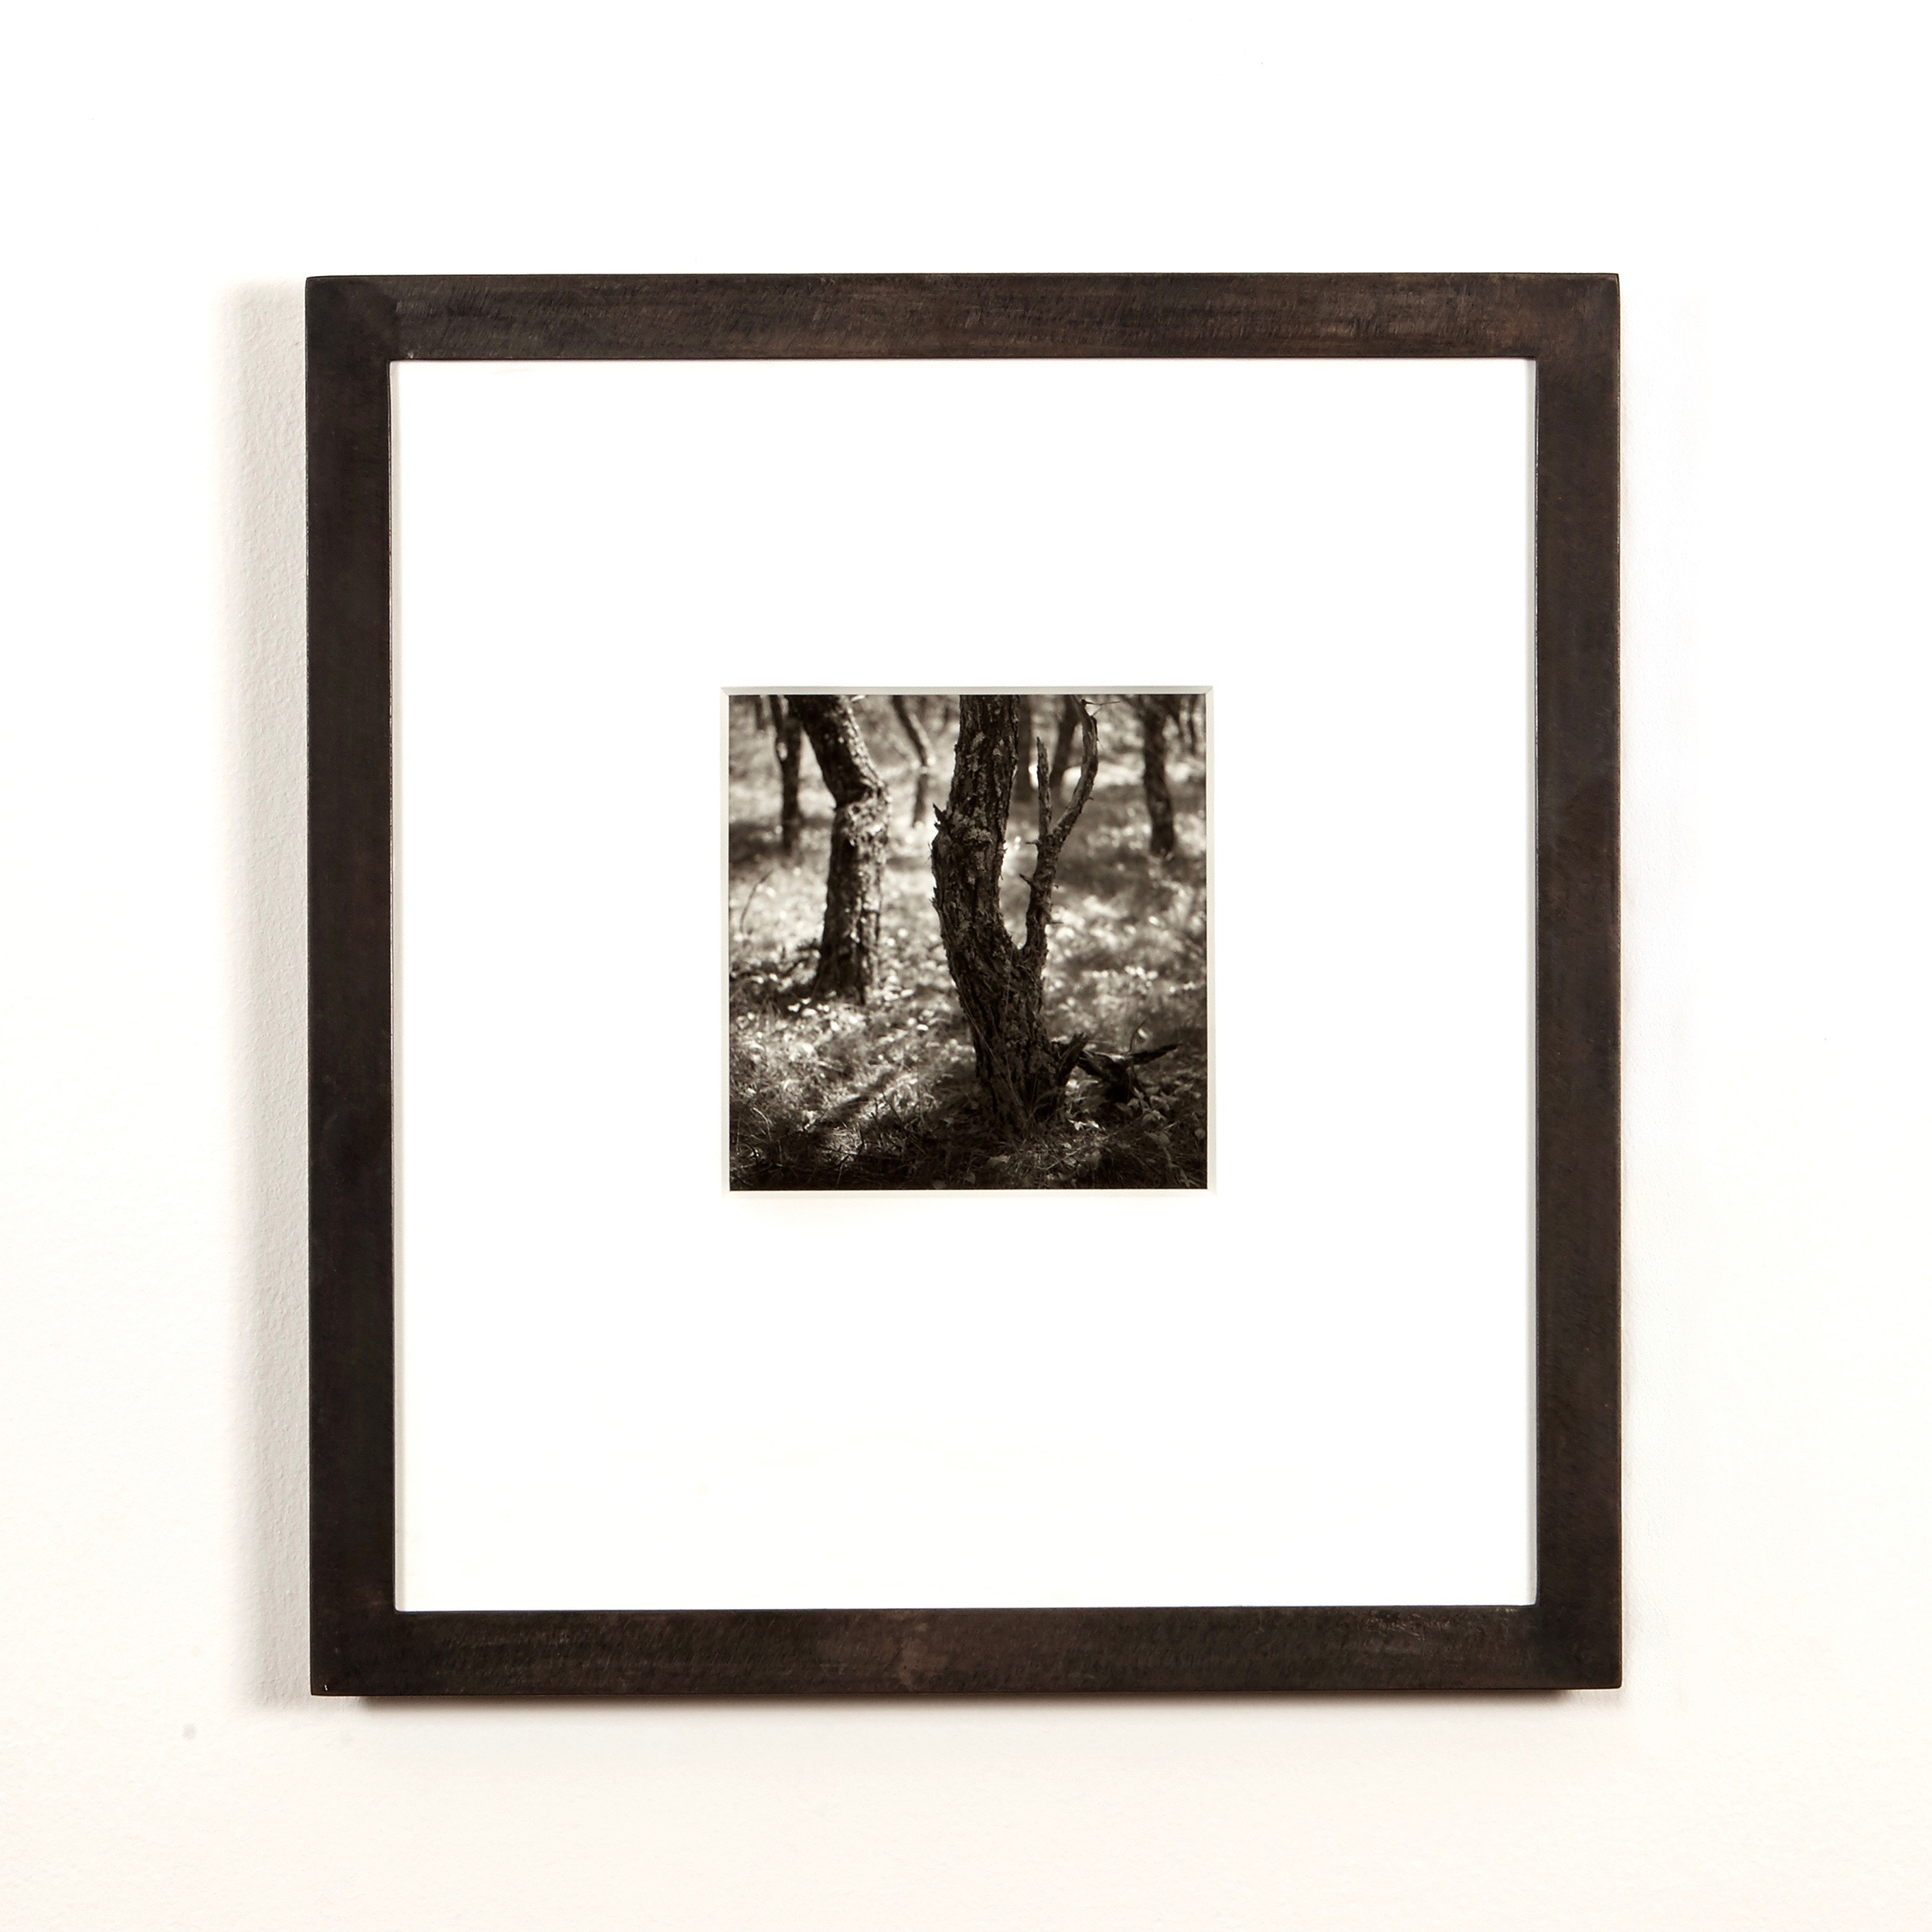 Eric Lindbloom silver gelatin photograph in welded steel frame